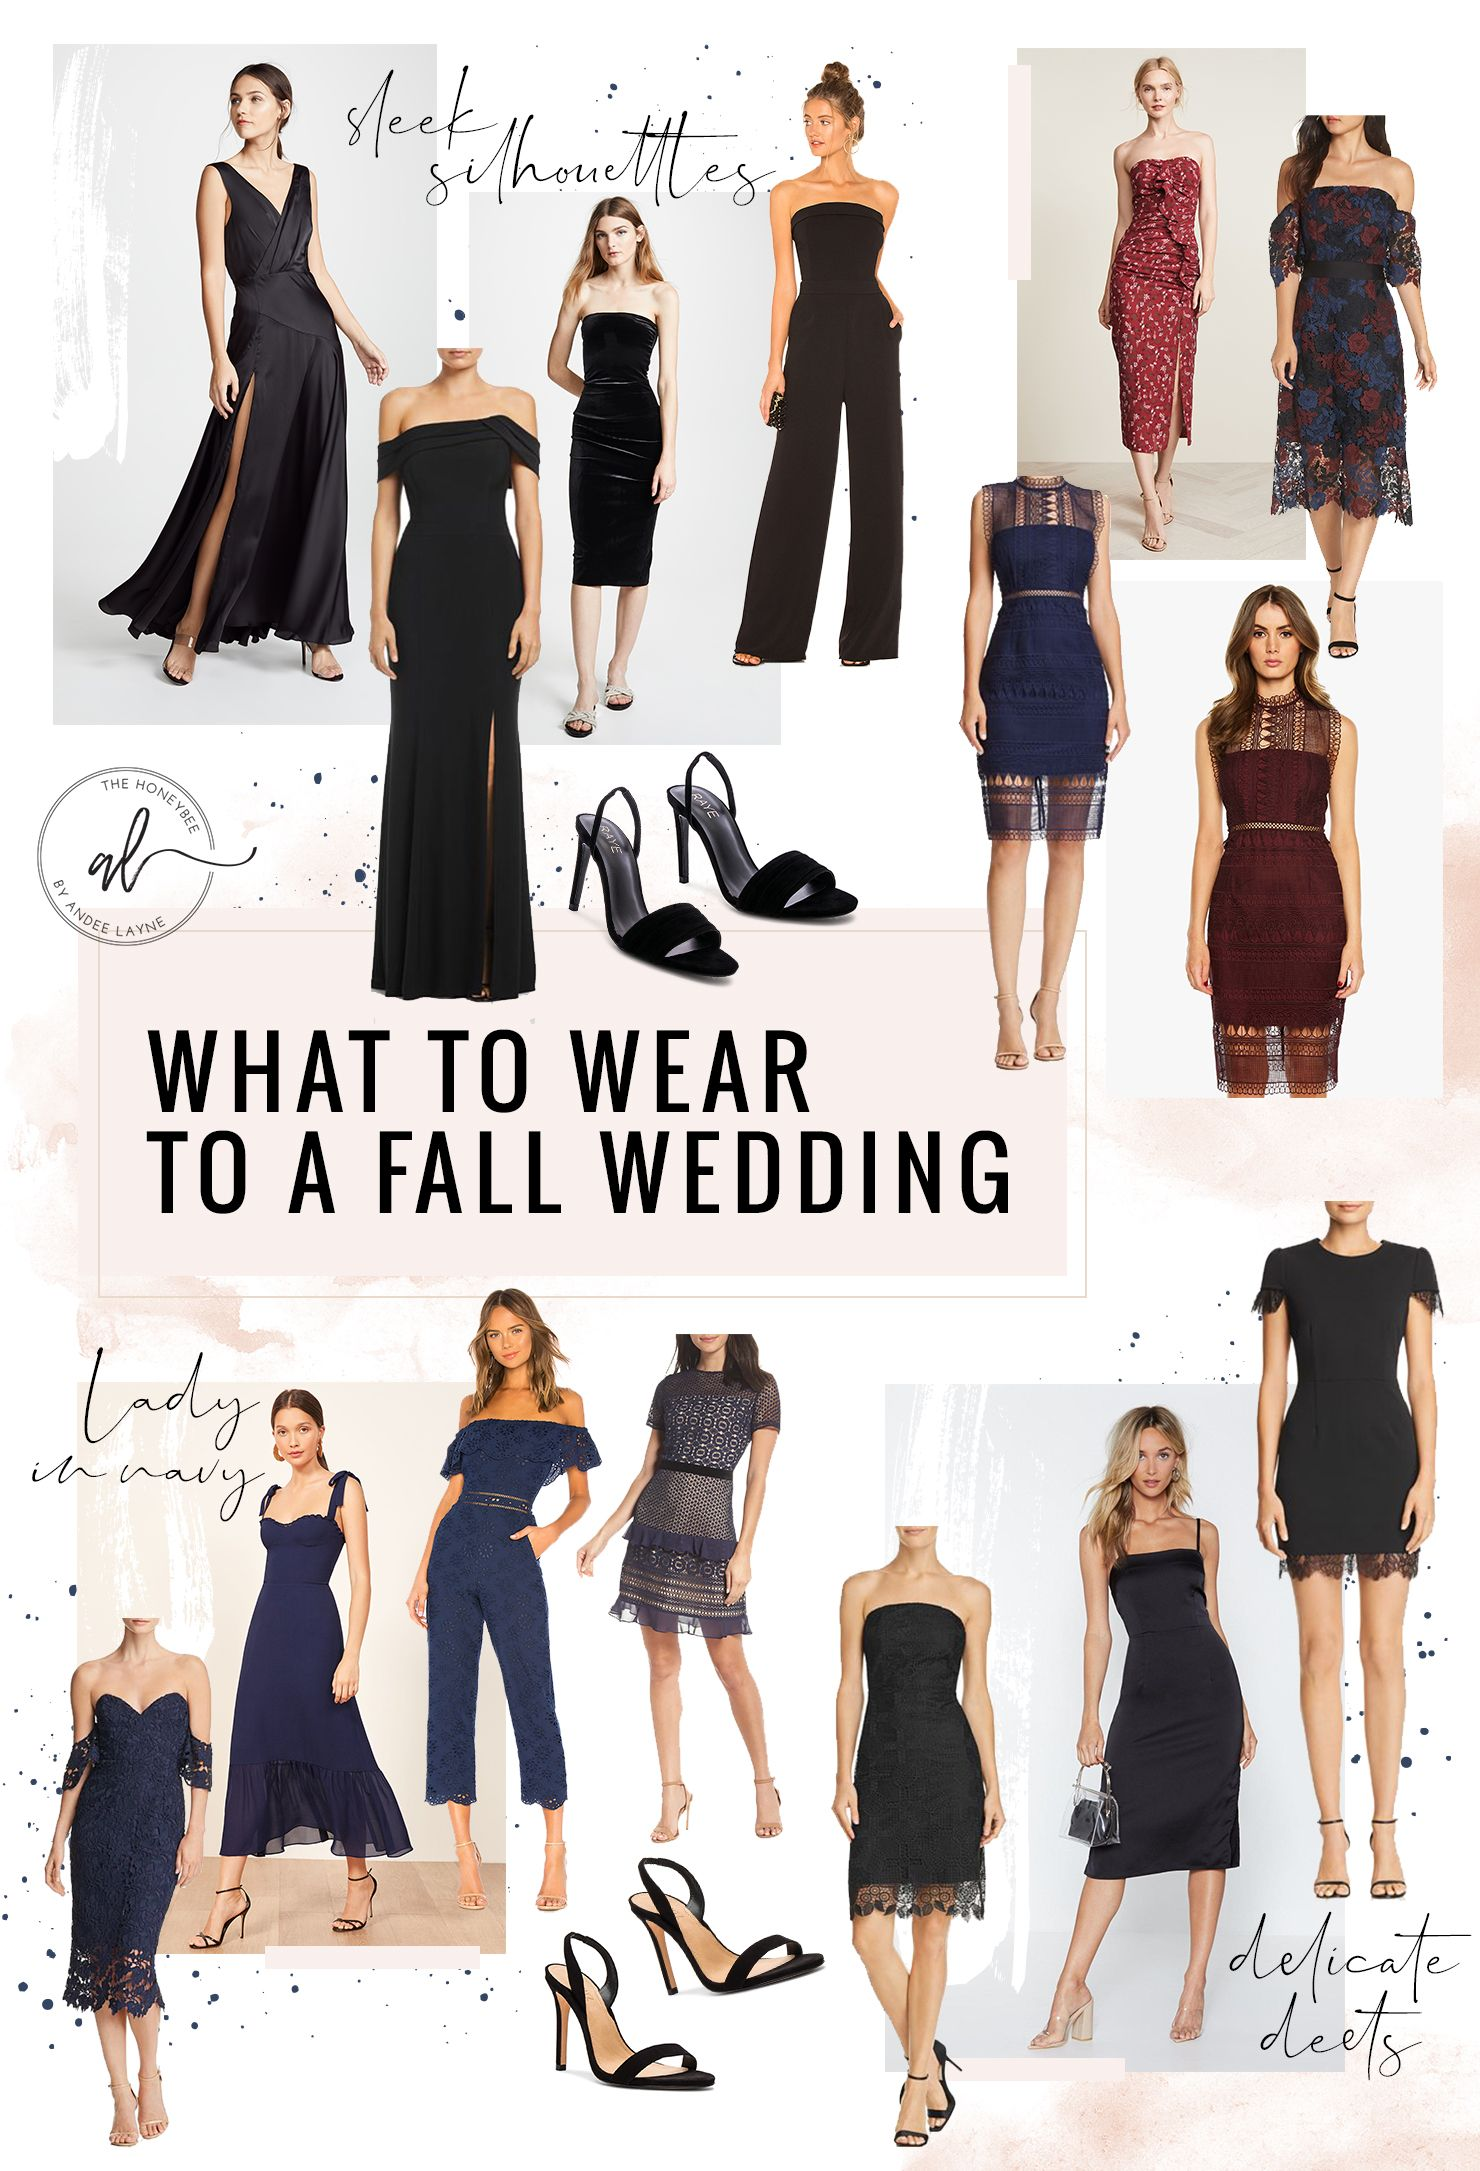 What To Wear To A Fall Wedding Andee Layne Casual Wedding Attire Cocktail Wedding Attire Wedding Attire Guest